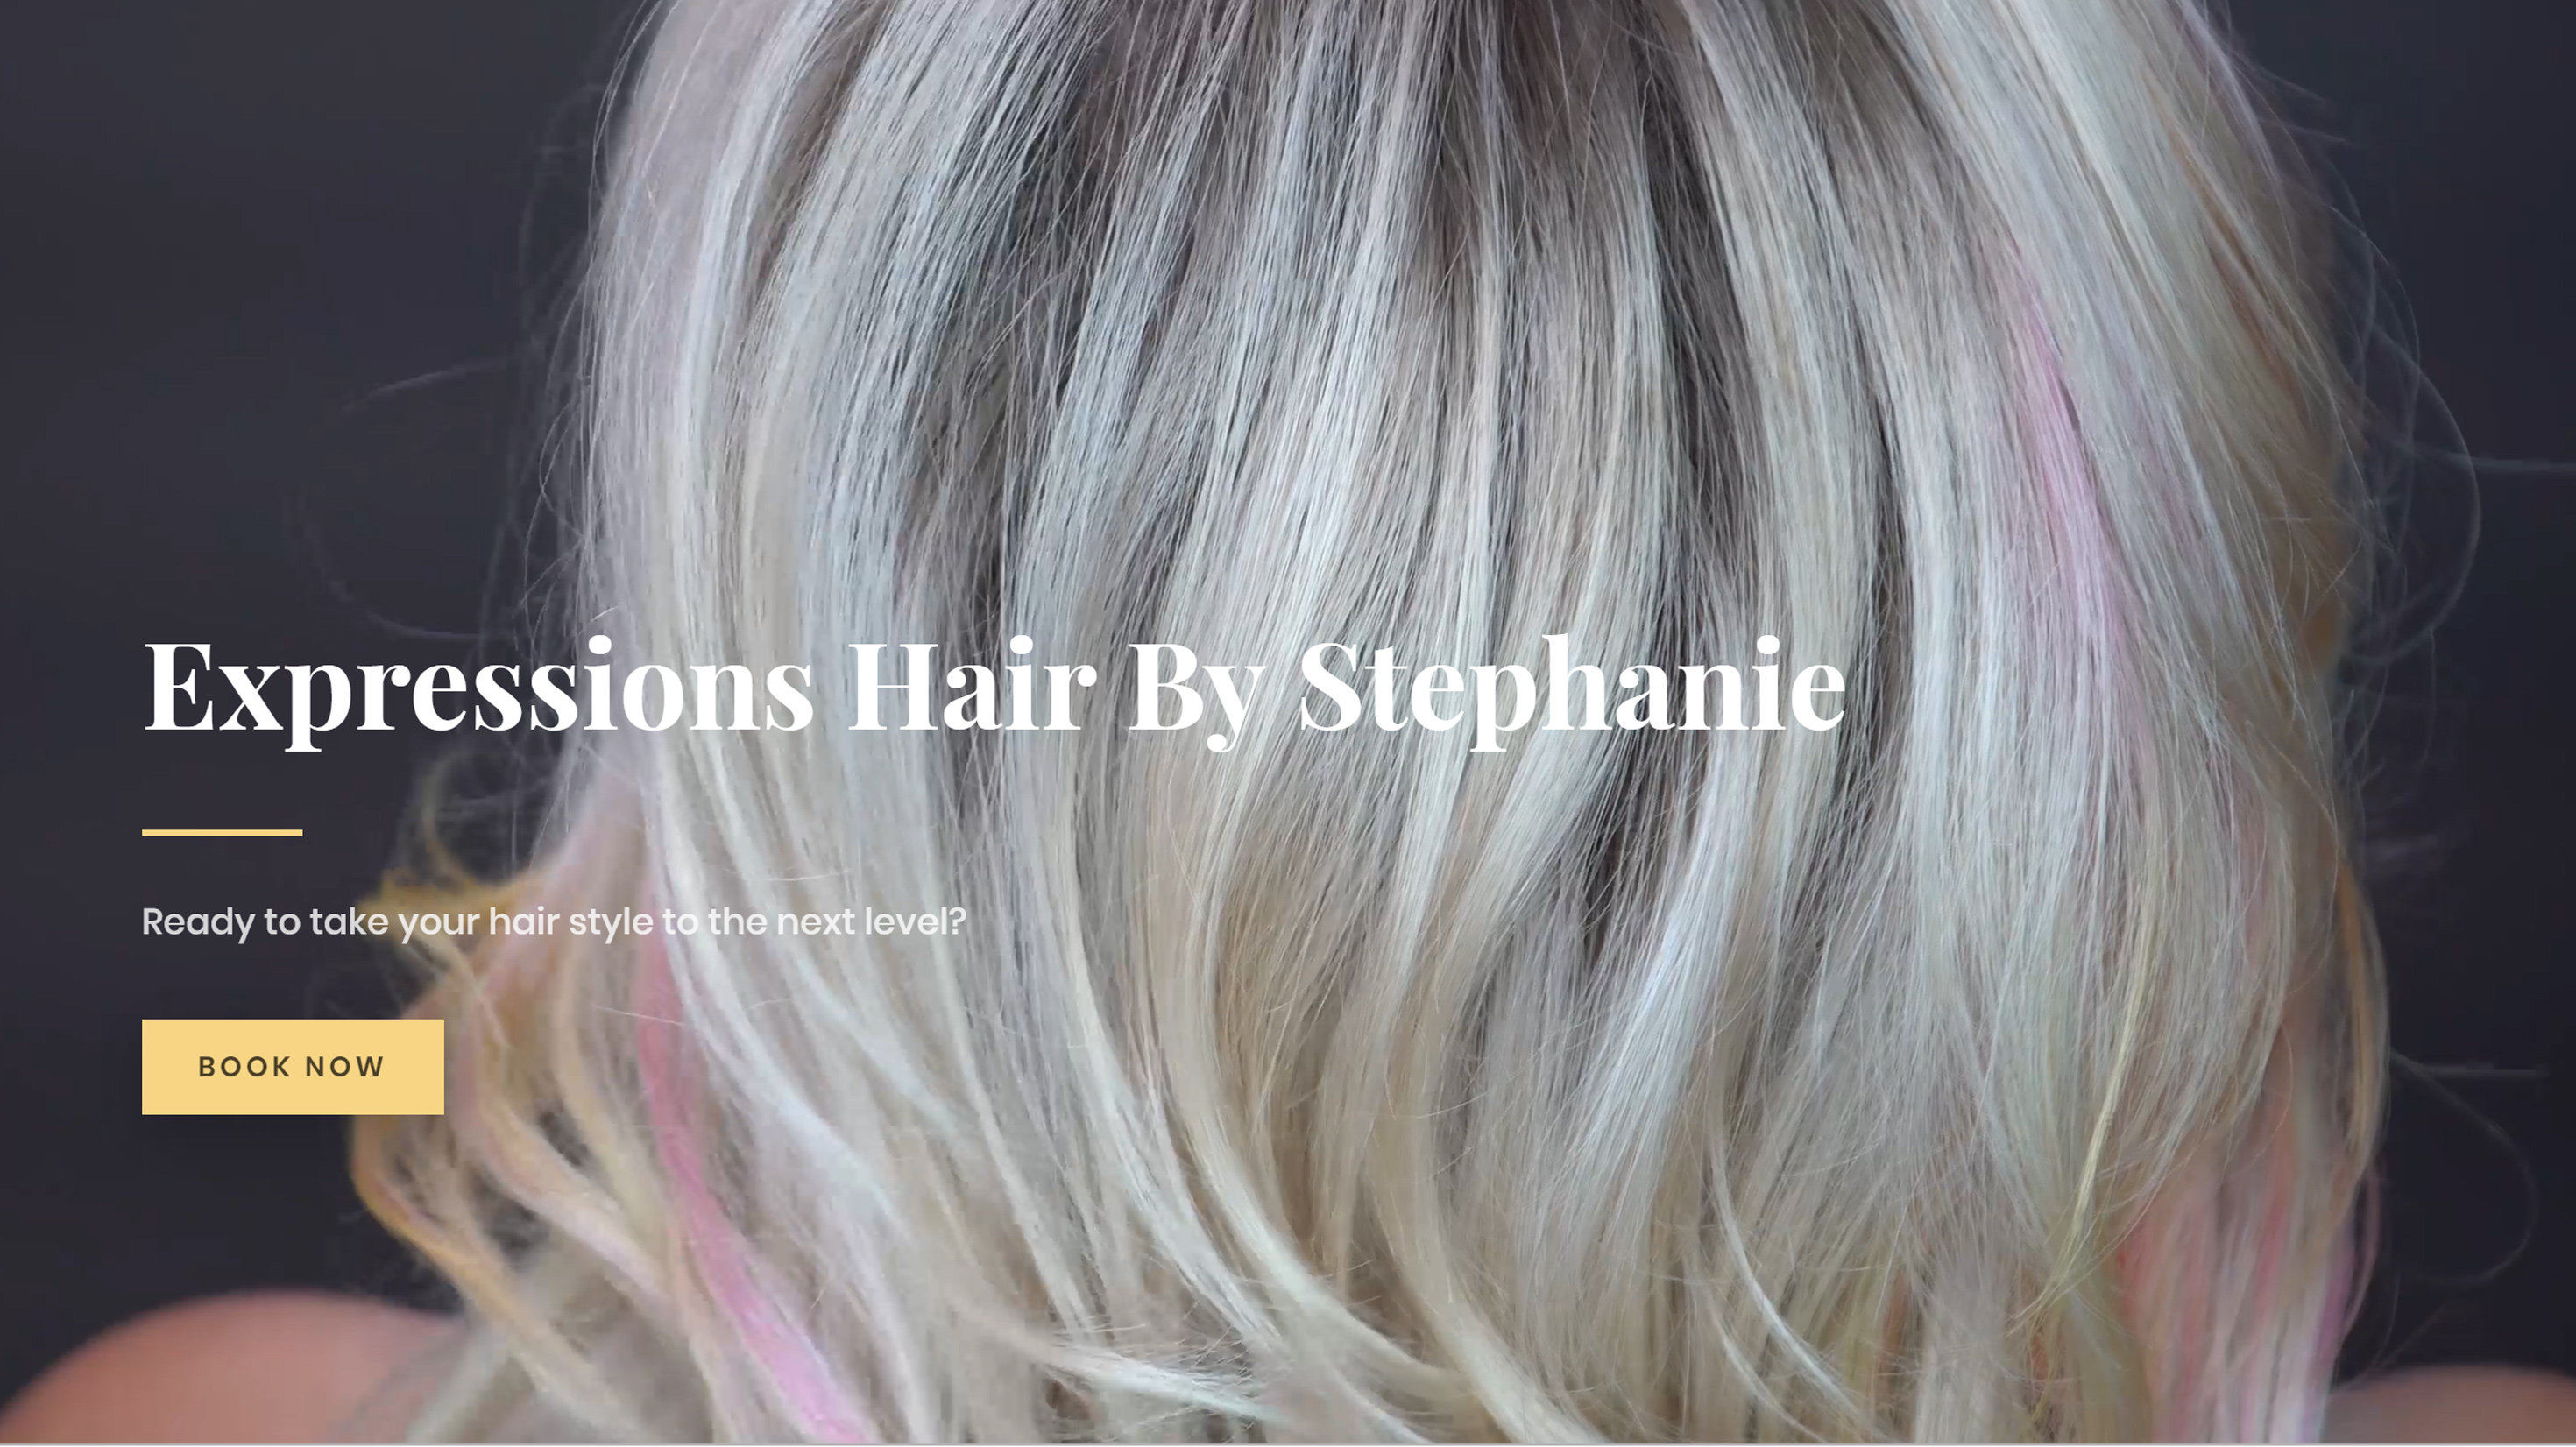 Expressions Hair by Stephanie Website